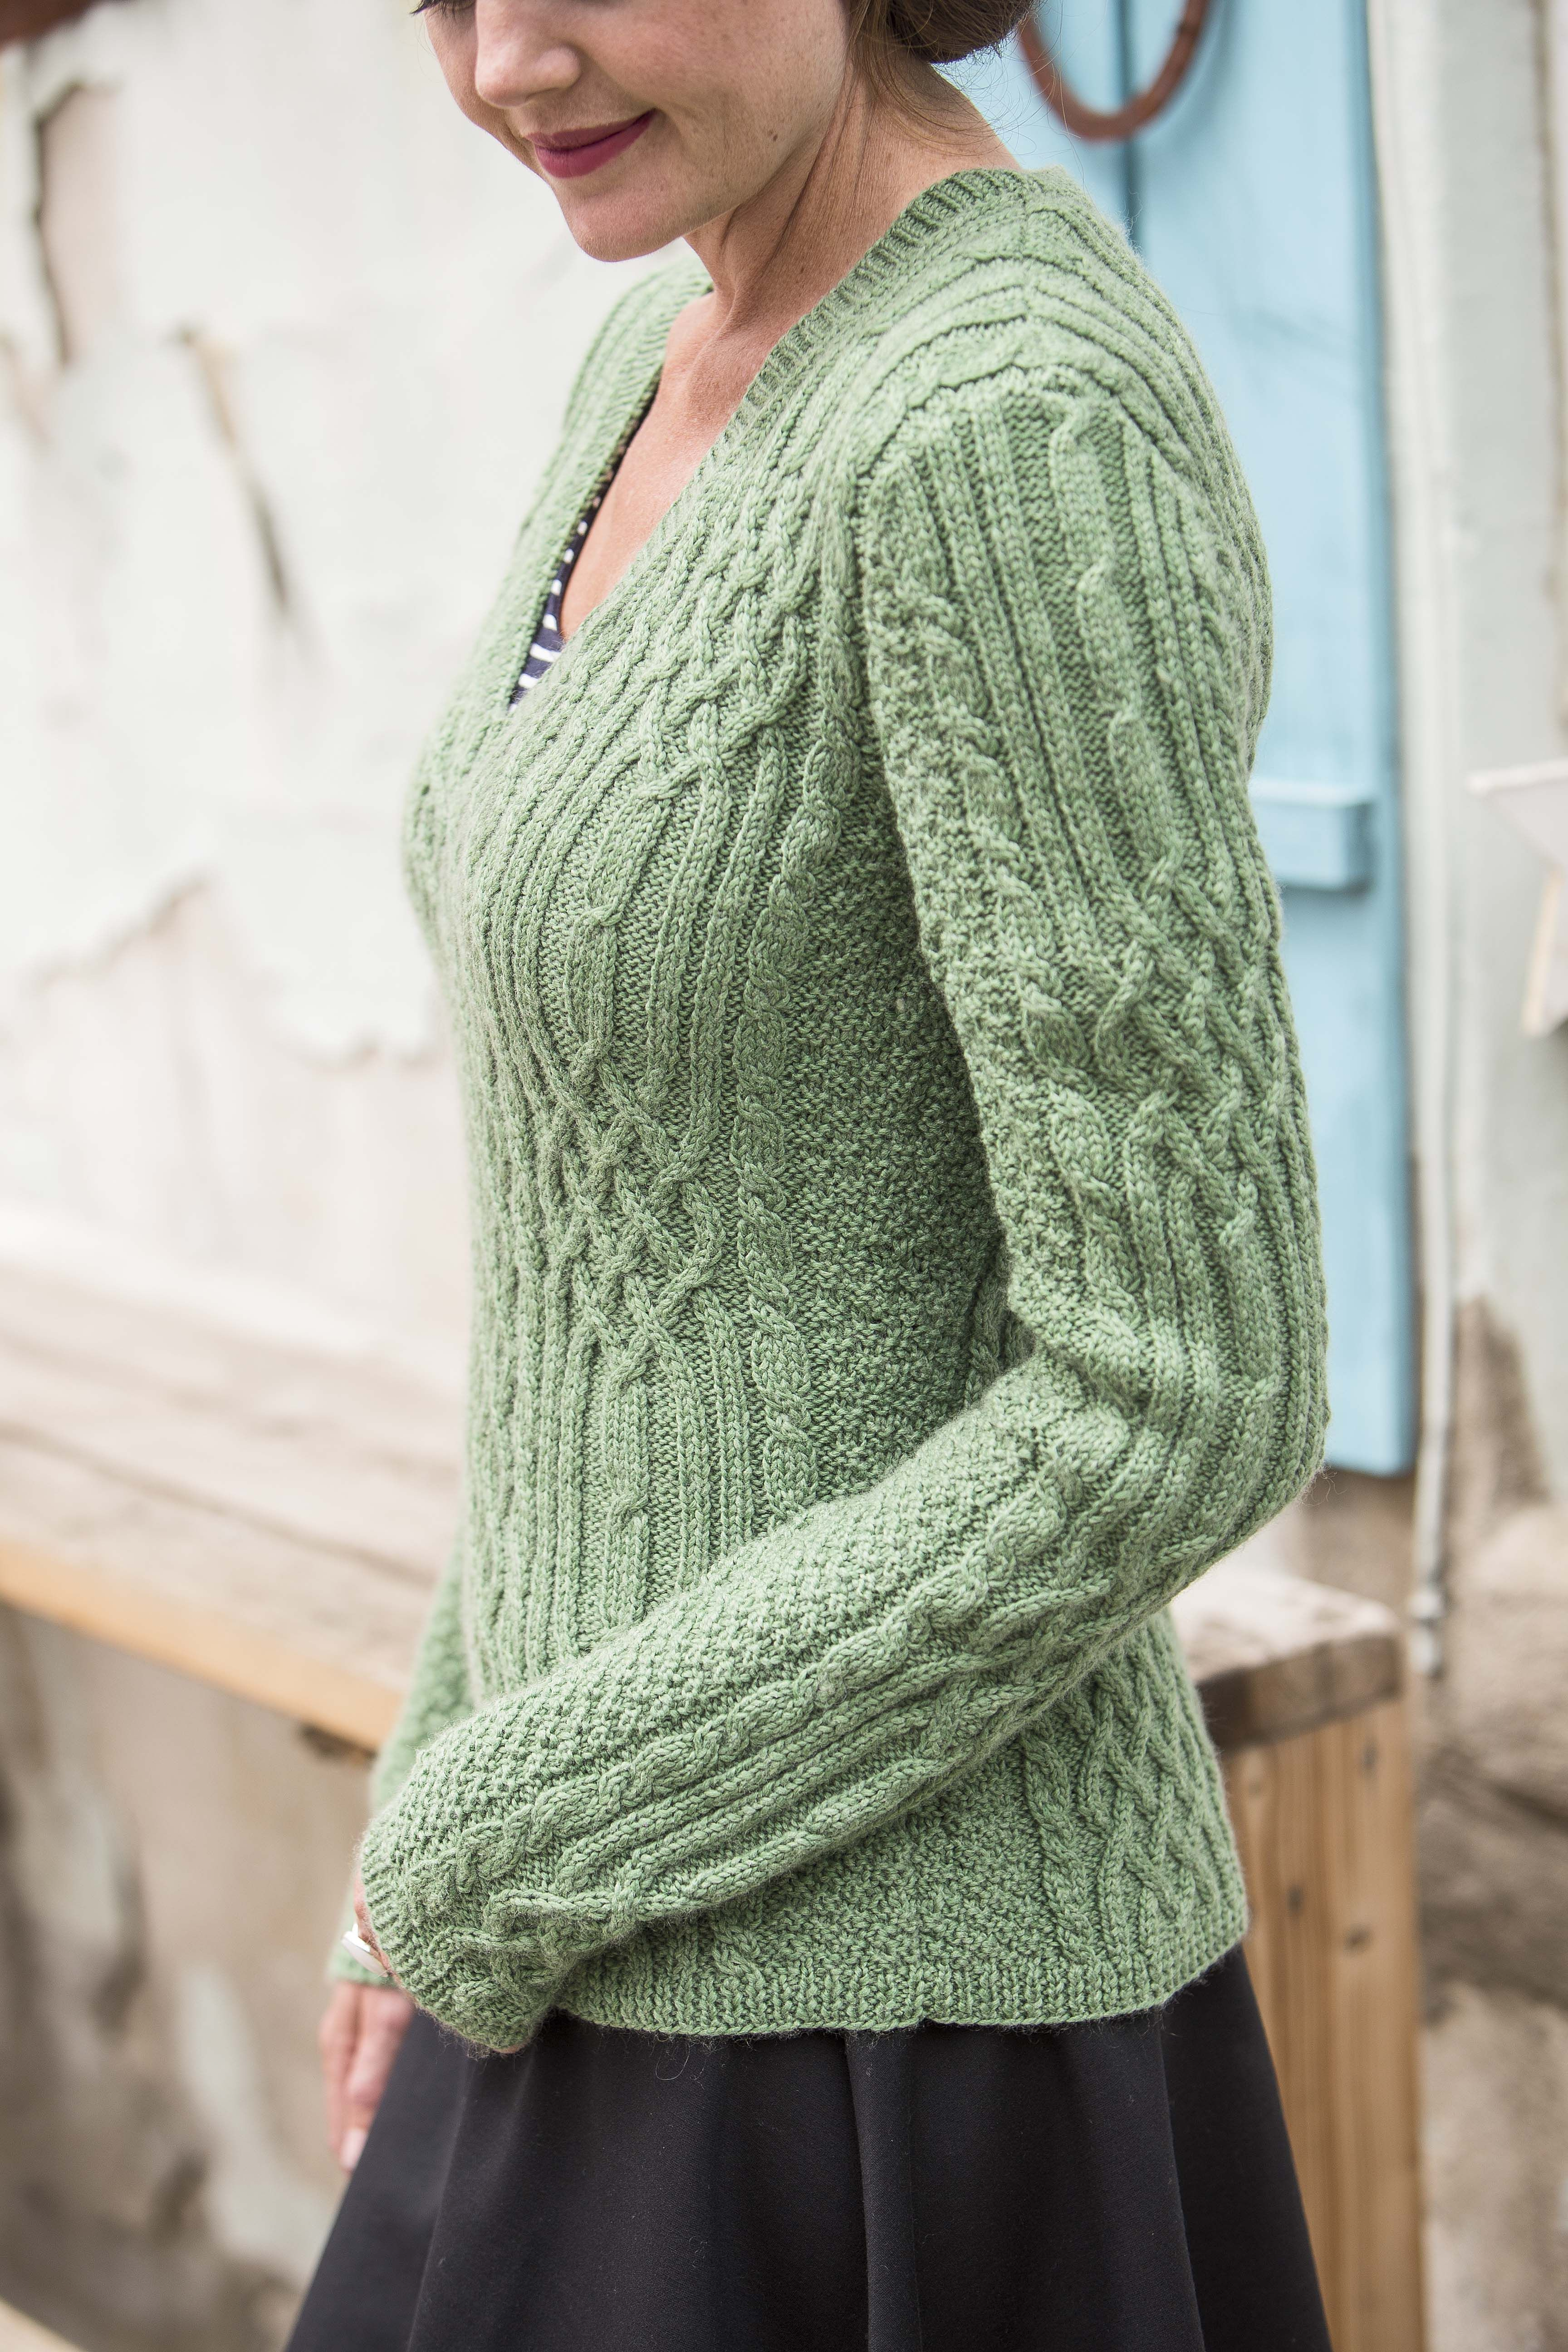 Matalina Pullover | tricot | Pinterest | Tejido